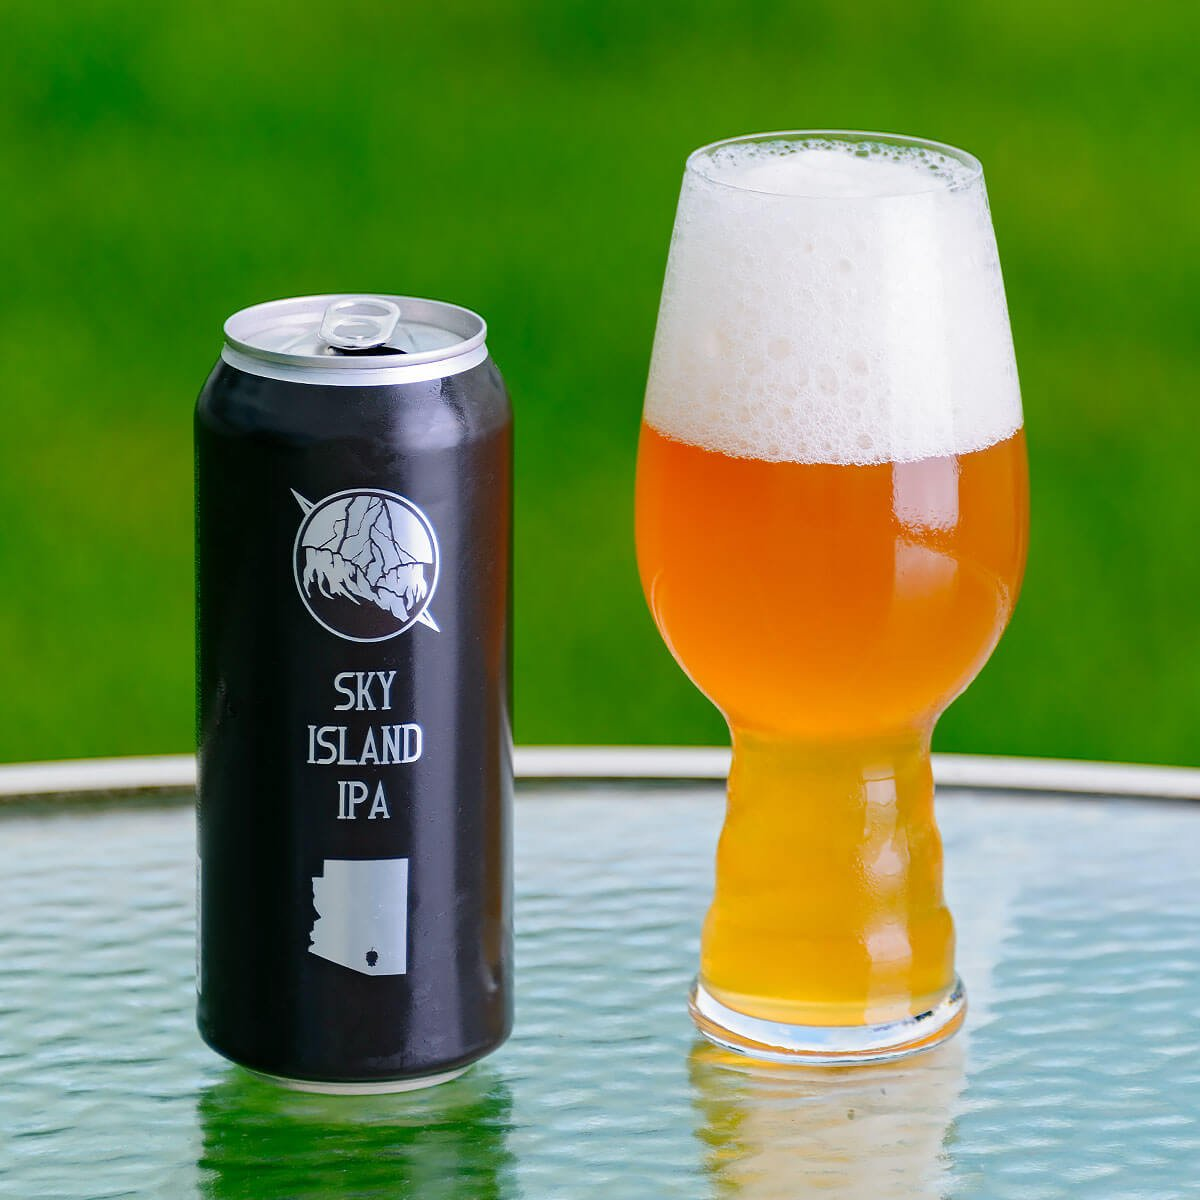 Sky Island IPA is an American IPA by Thunder Canyon Brewstillery that blends bright citrus, pine, and resin with sweet and juicy tropical fruit.